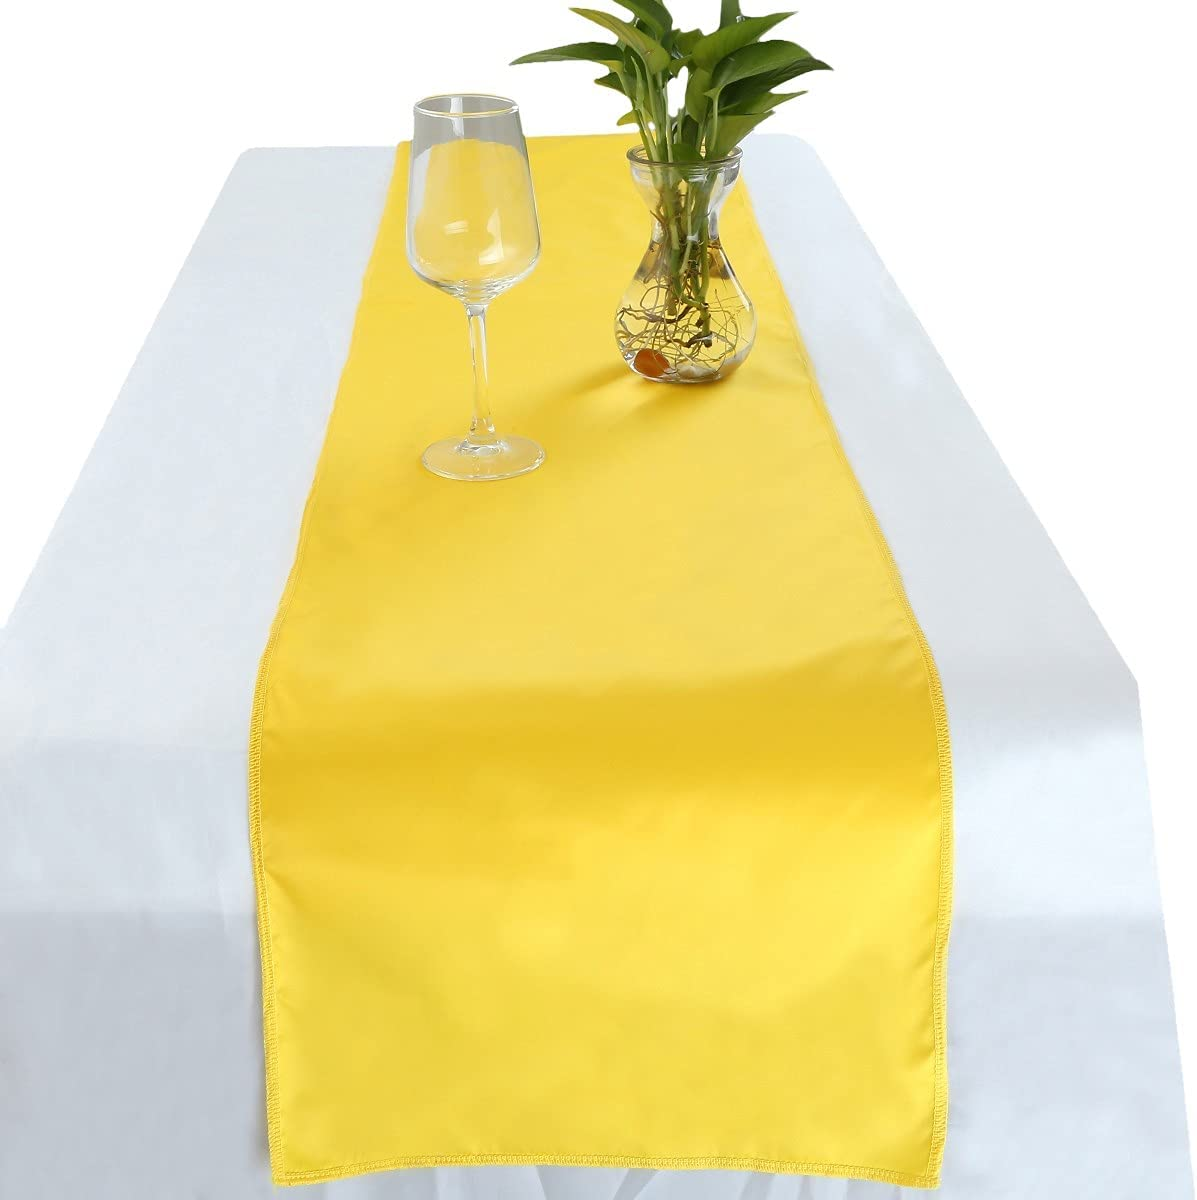 Rockcloud 12 x 72 Inch Yellow Table Runner for Wedding Banquet Decorations, Christmas, Birthday, Graduation, Prom, Party Table Decor